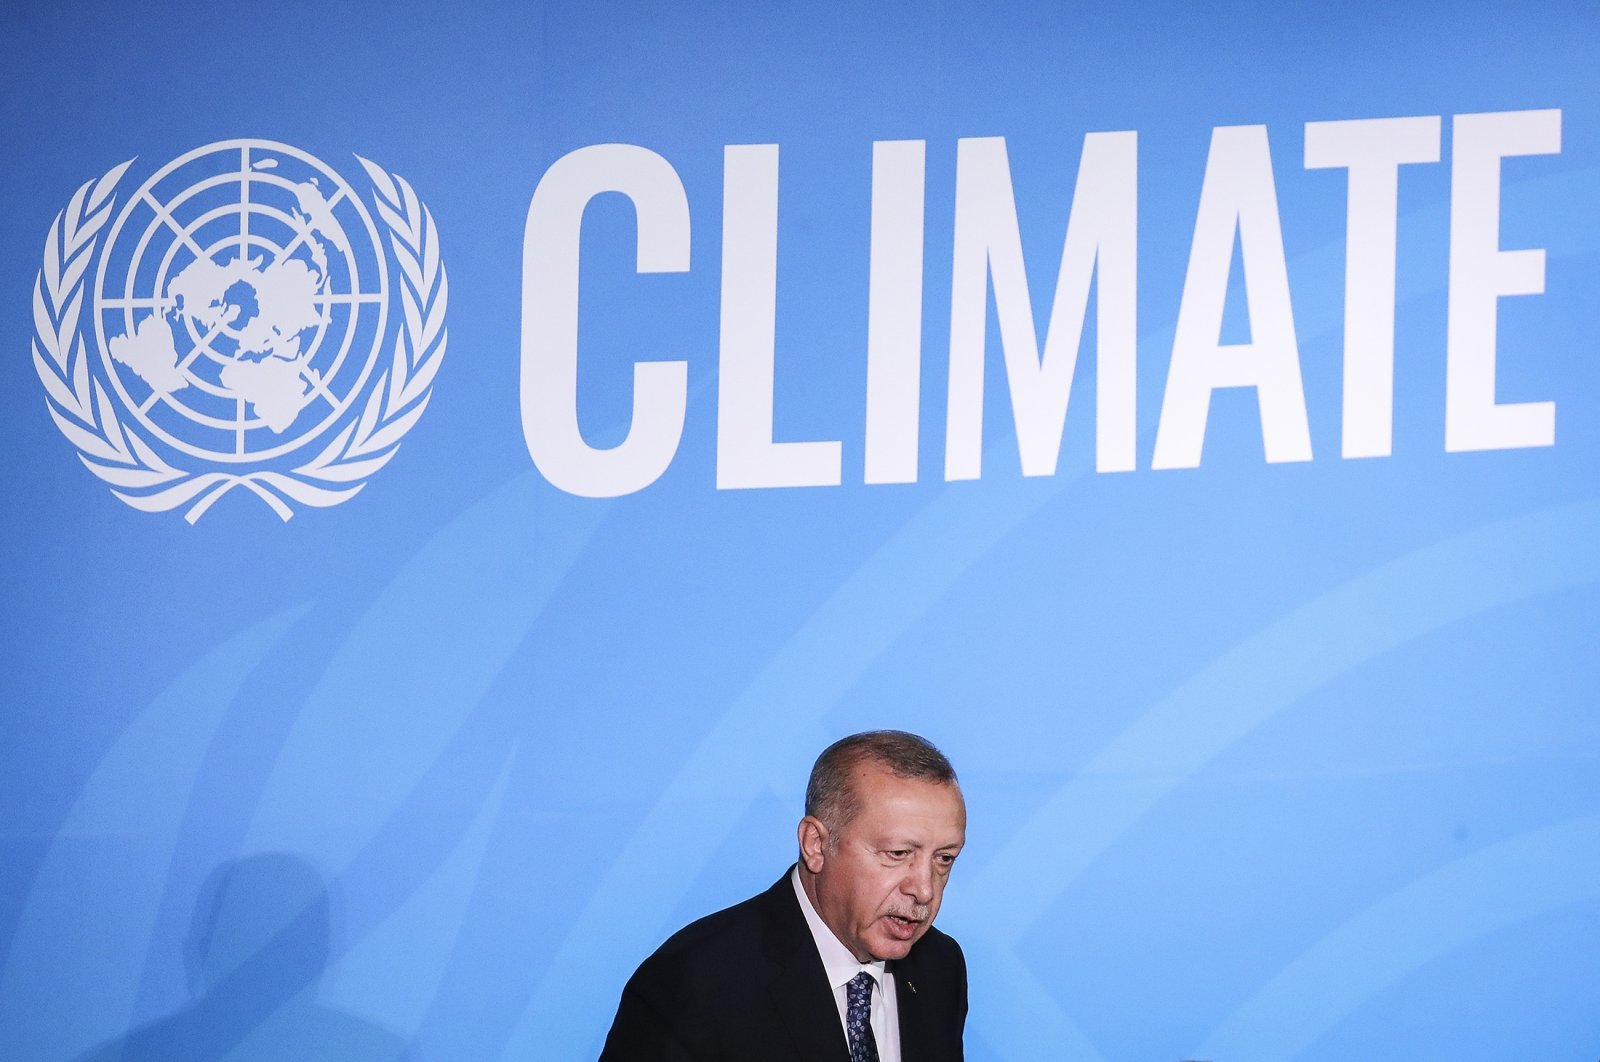 Turkish President Recep Tayyip Erdoğan speaks at the United Nations summit on climate change, New York City, Sept. 23, 2019. (Getty Images)